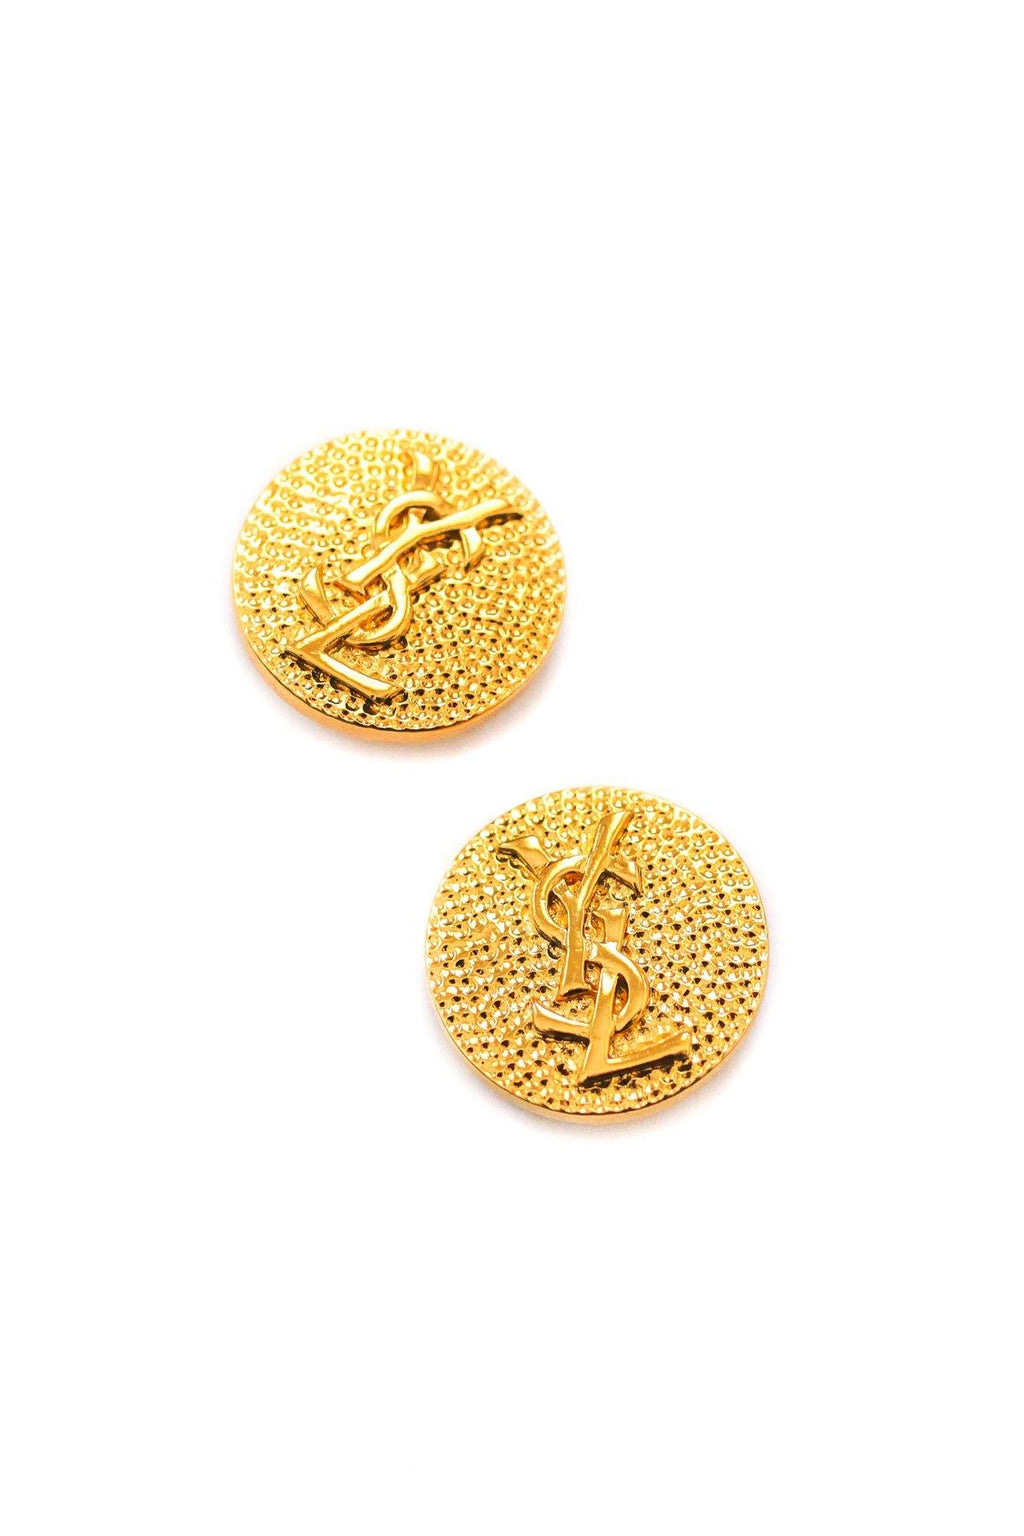 YSL Button Clip-on Earrings